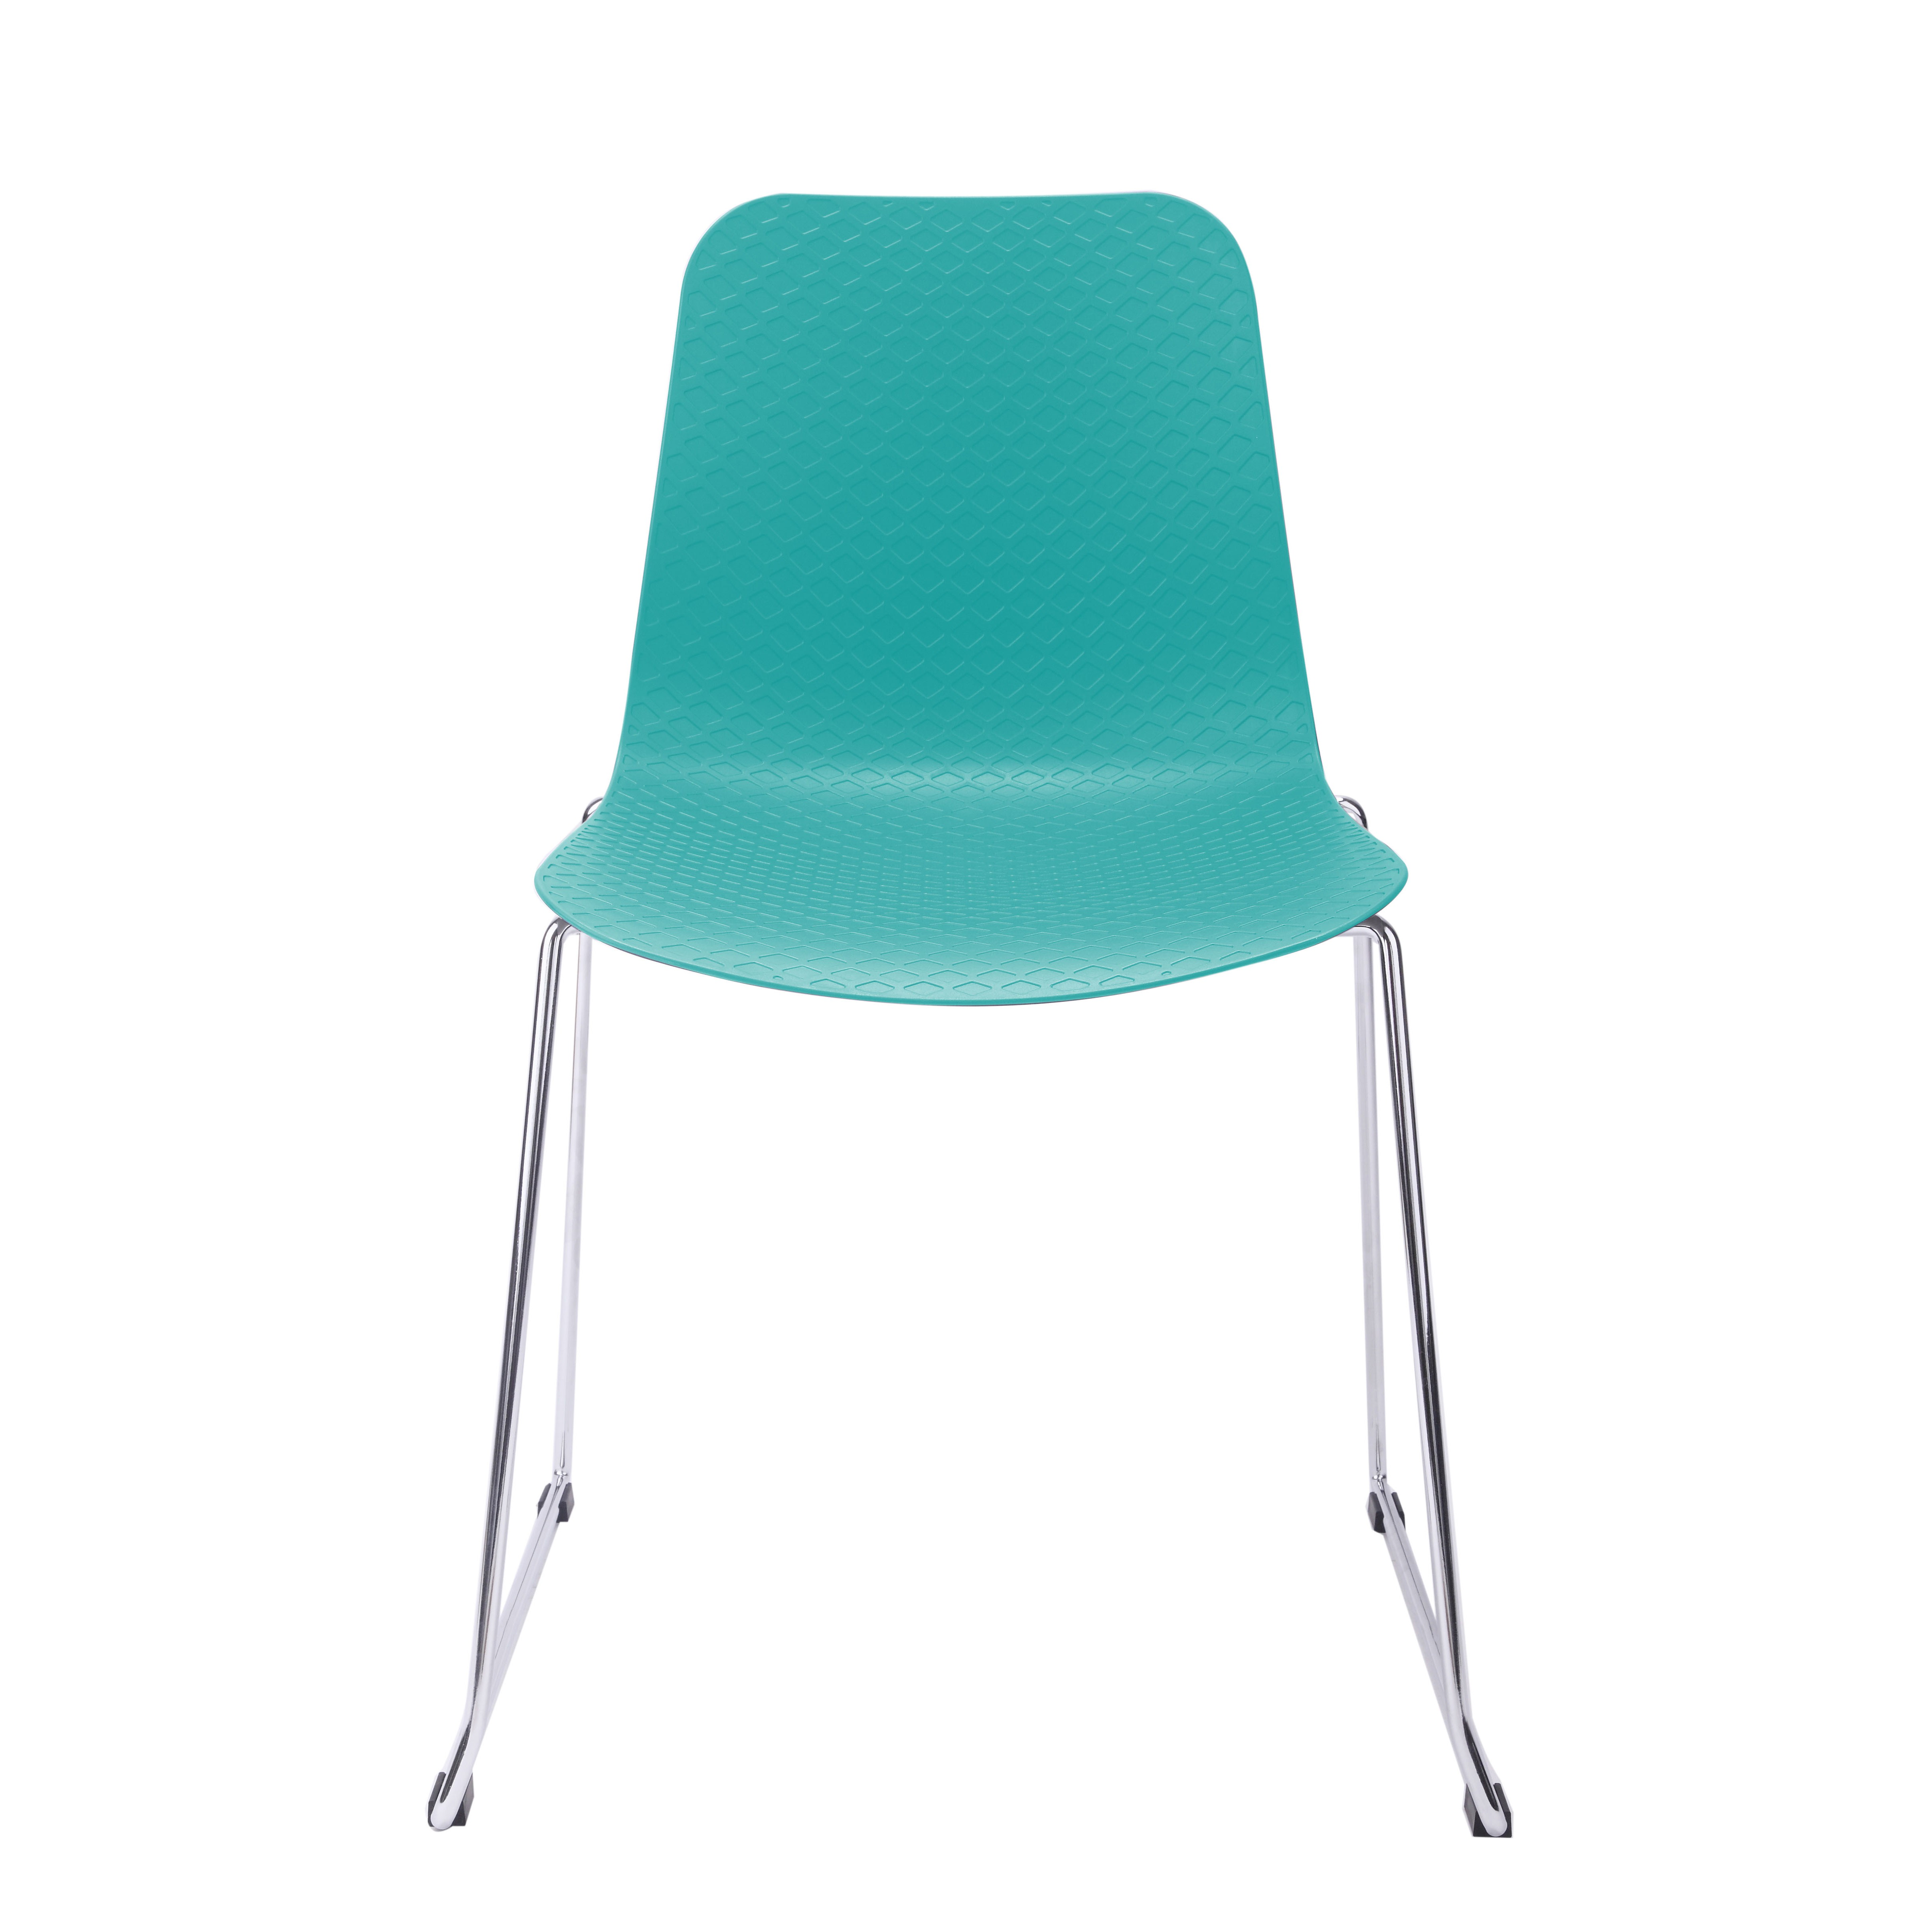 Hebe series turquoise dining shell side chair molded plastic steel metal legs - Duidelijk plastic stoel ...